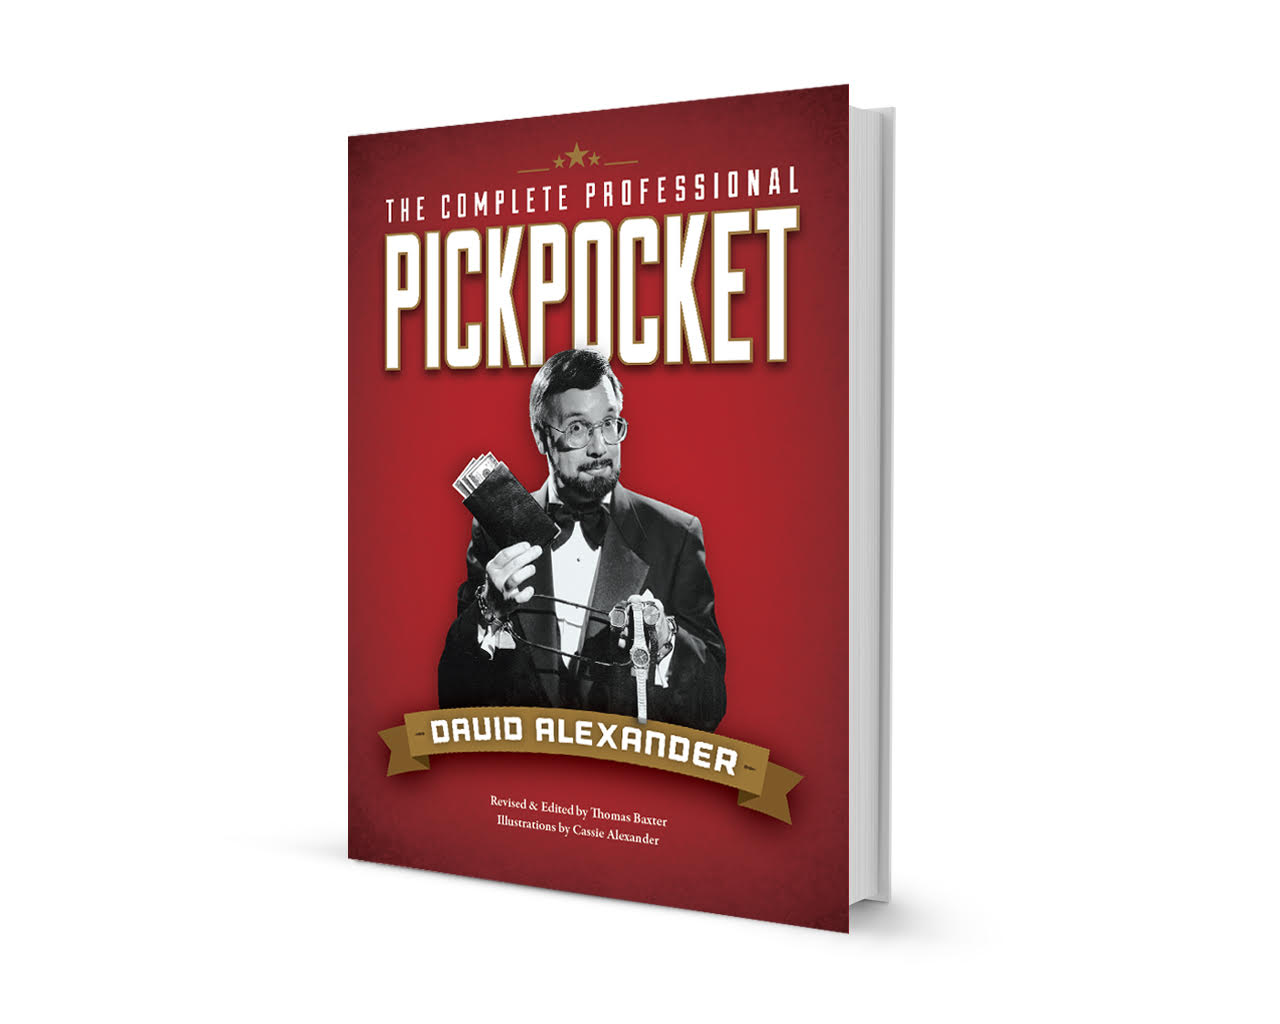 The Complete Professional Pickpocket Book by David Alexander